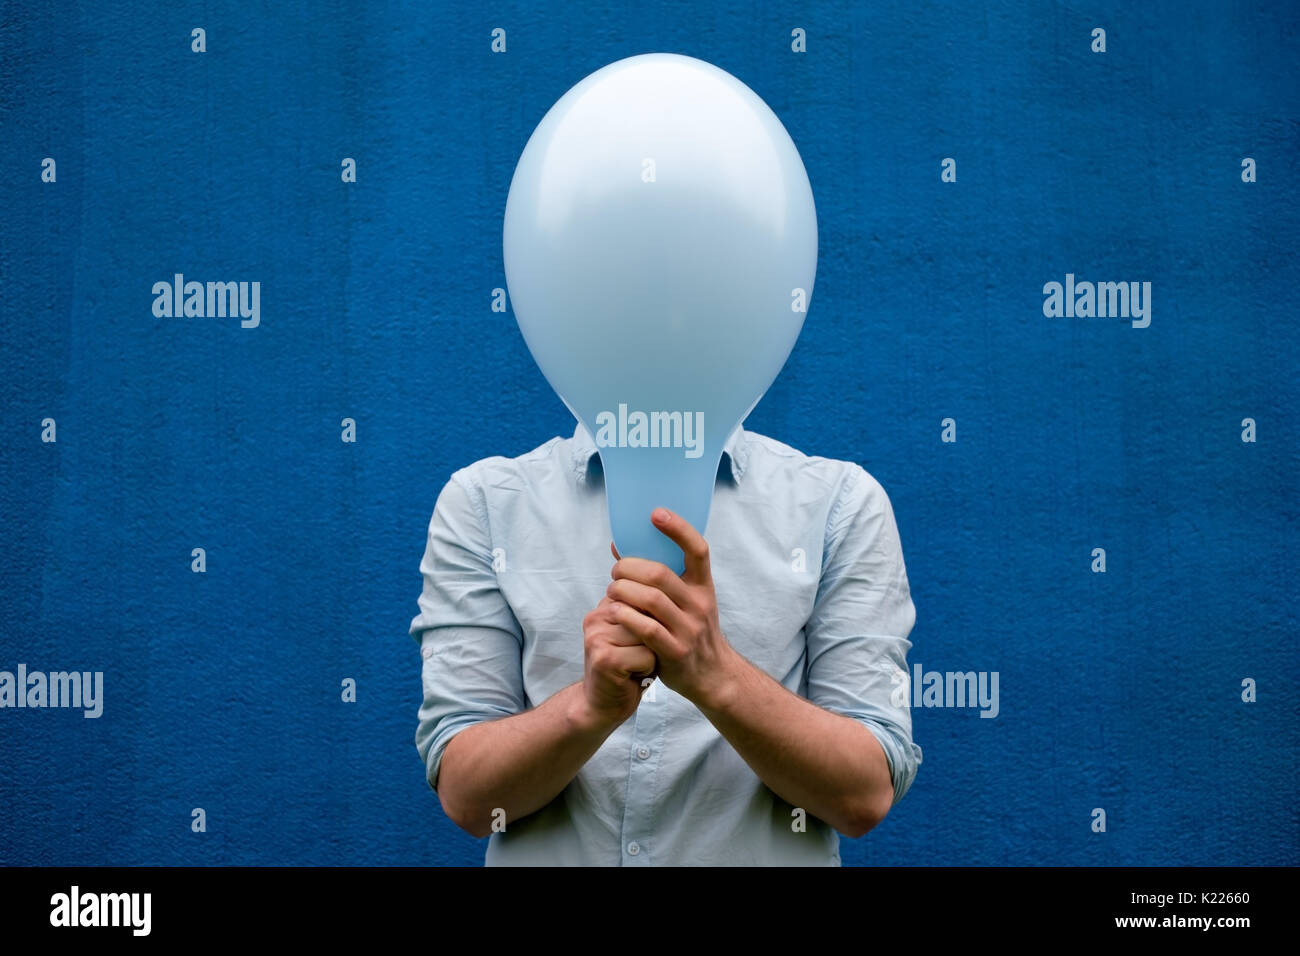 A white man covers his face with a blue balloon. - Stock Image